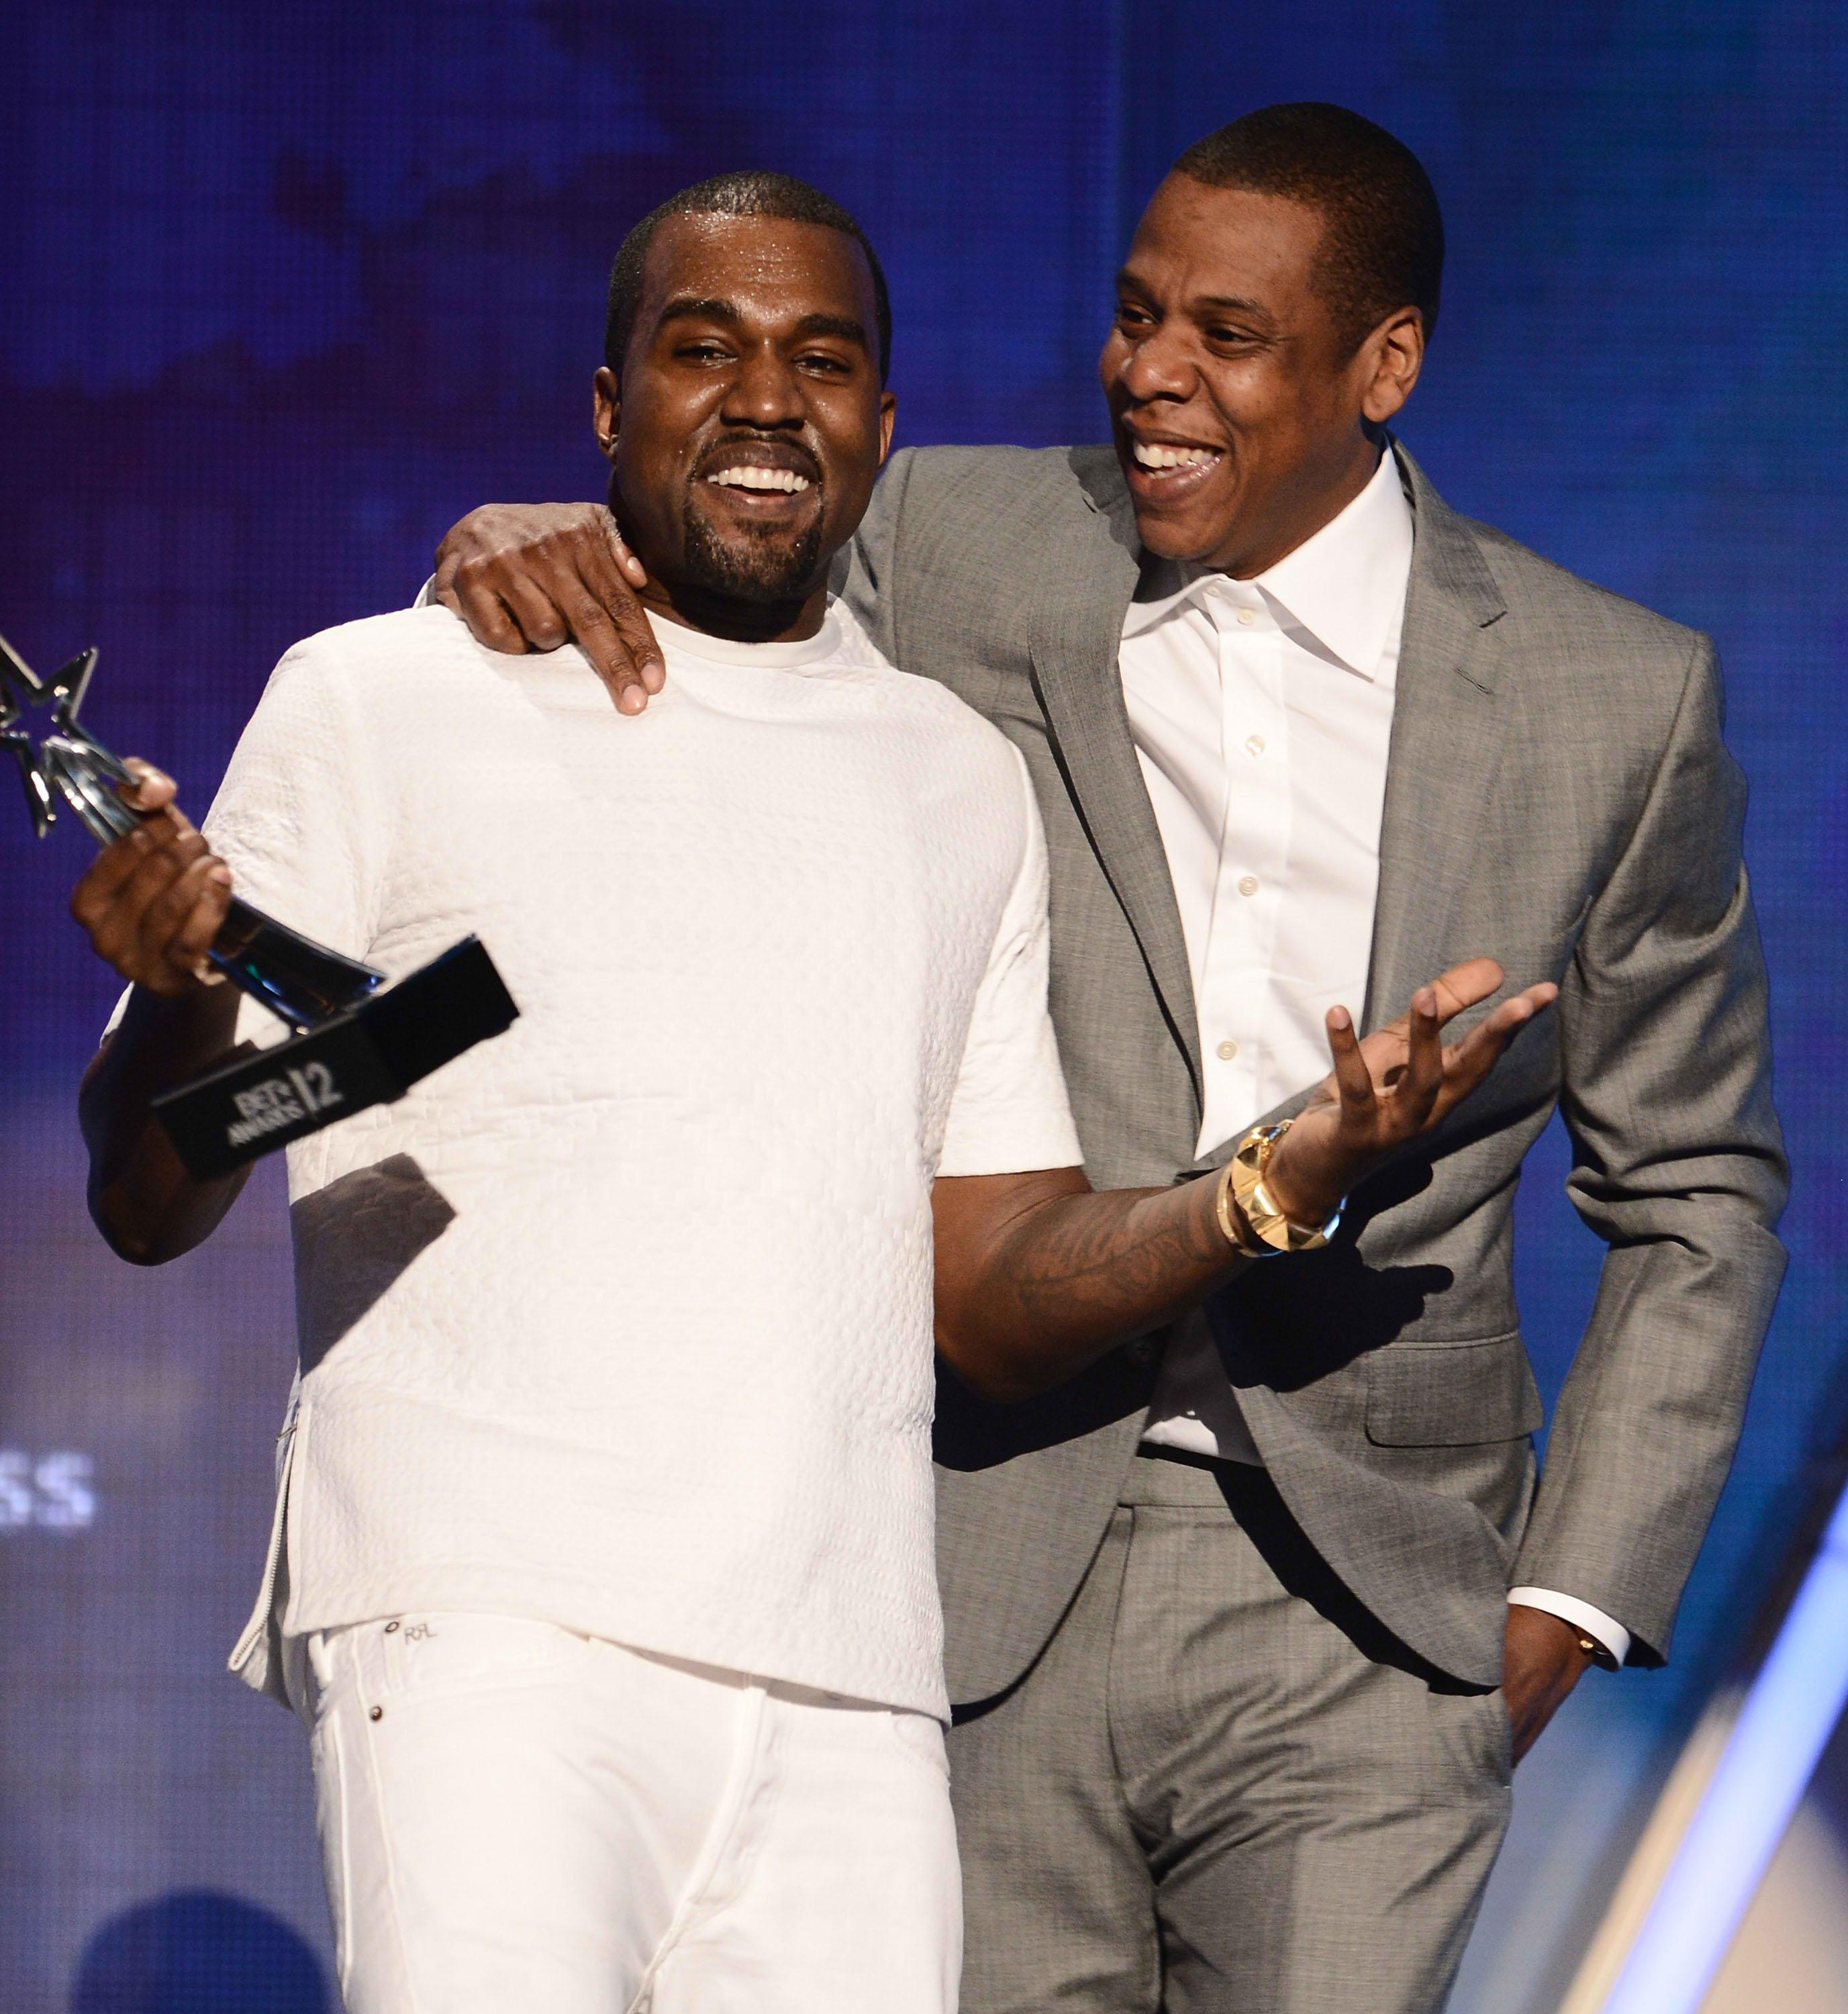 Jay-Z on why he is feuding with Kanye West